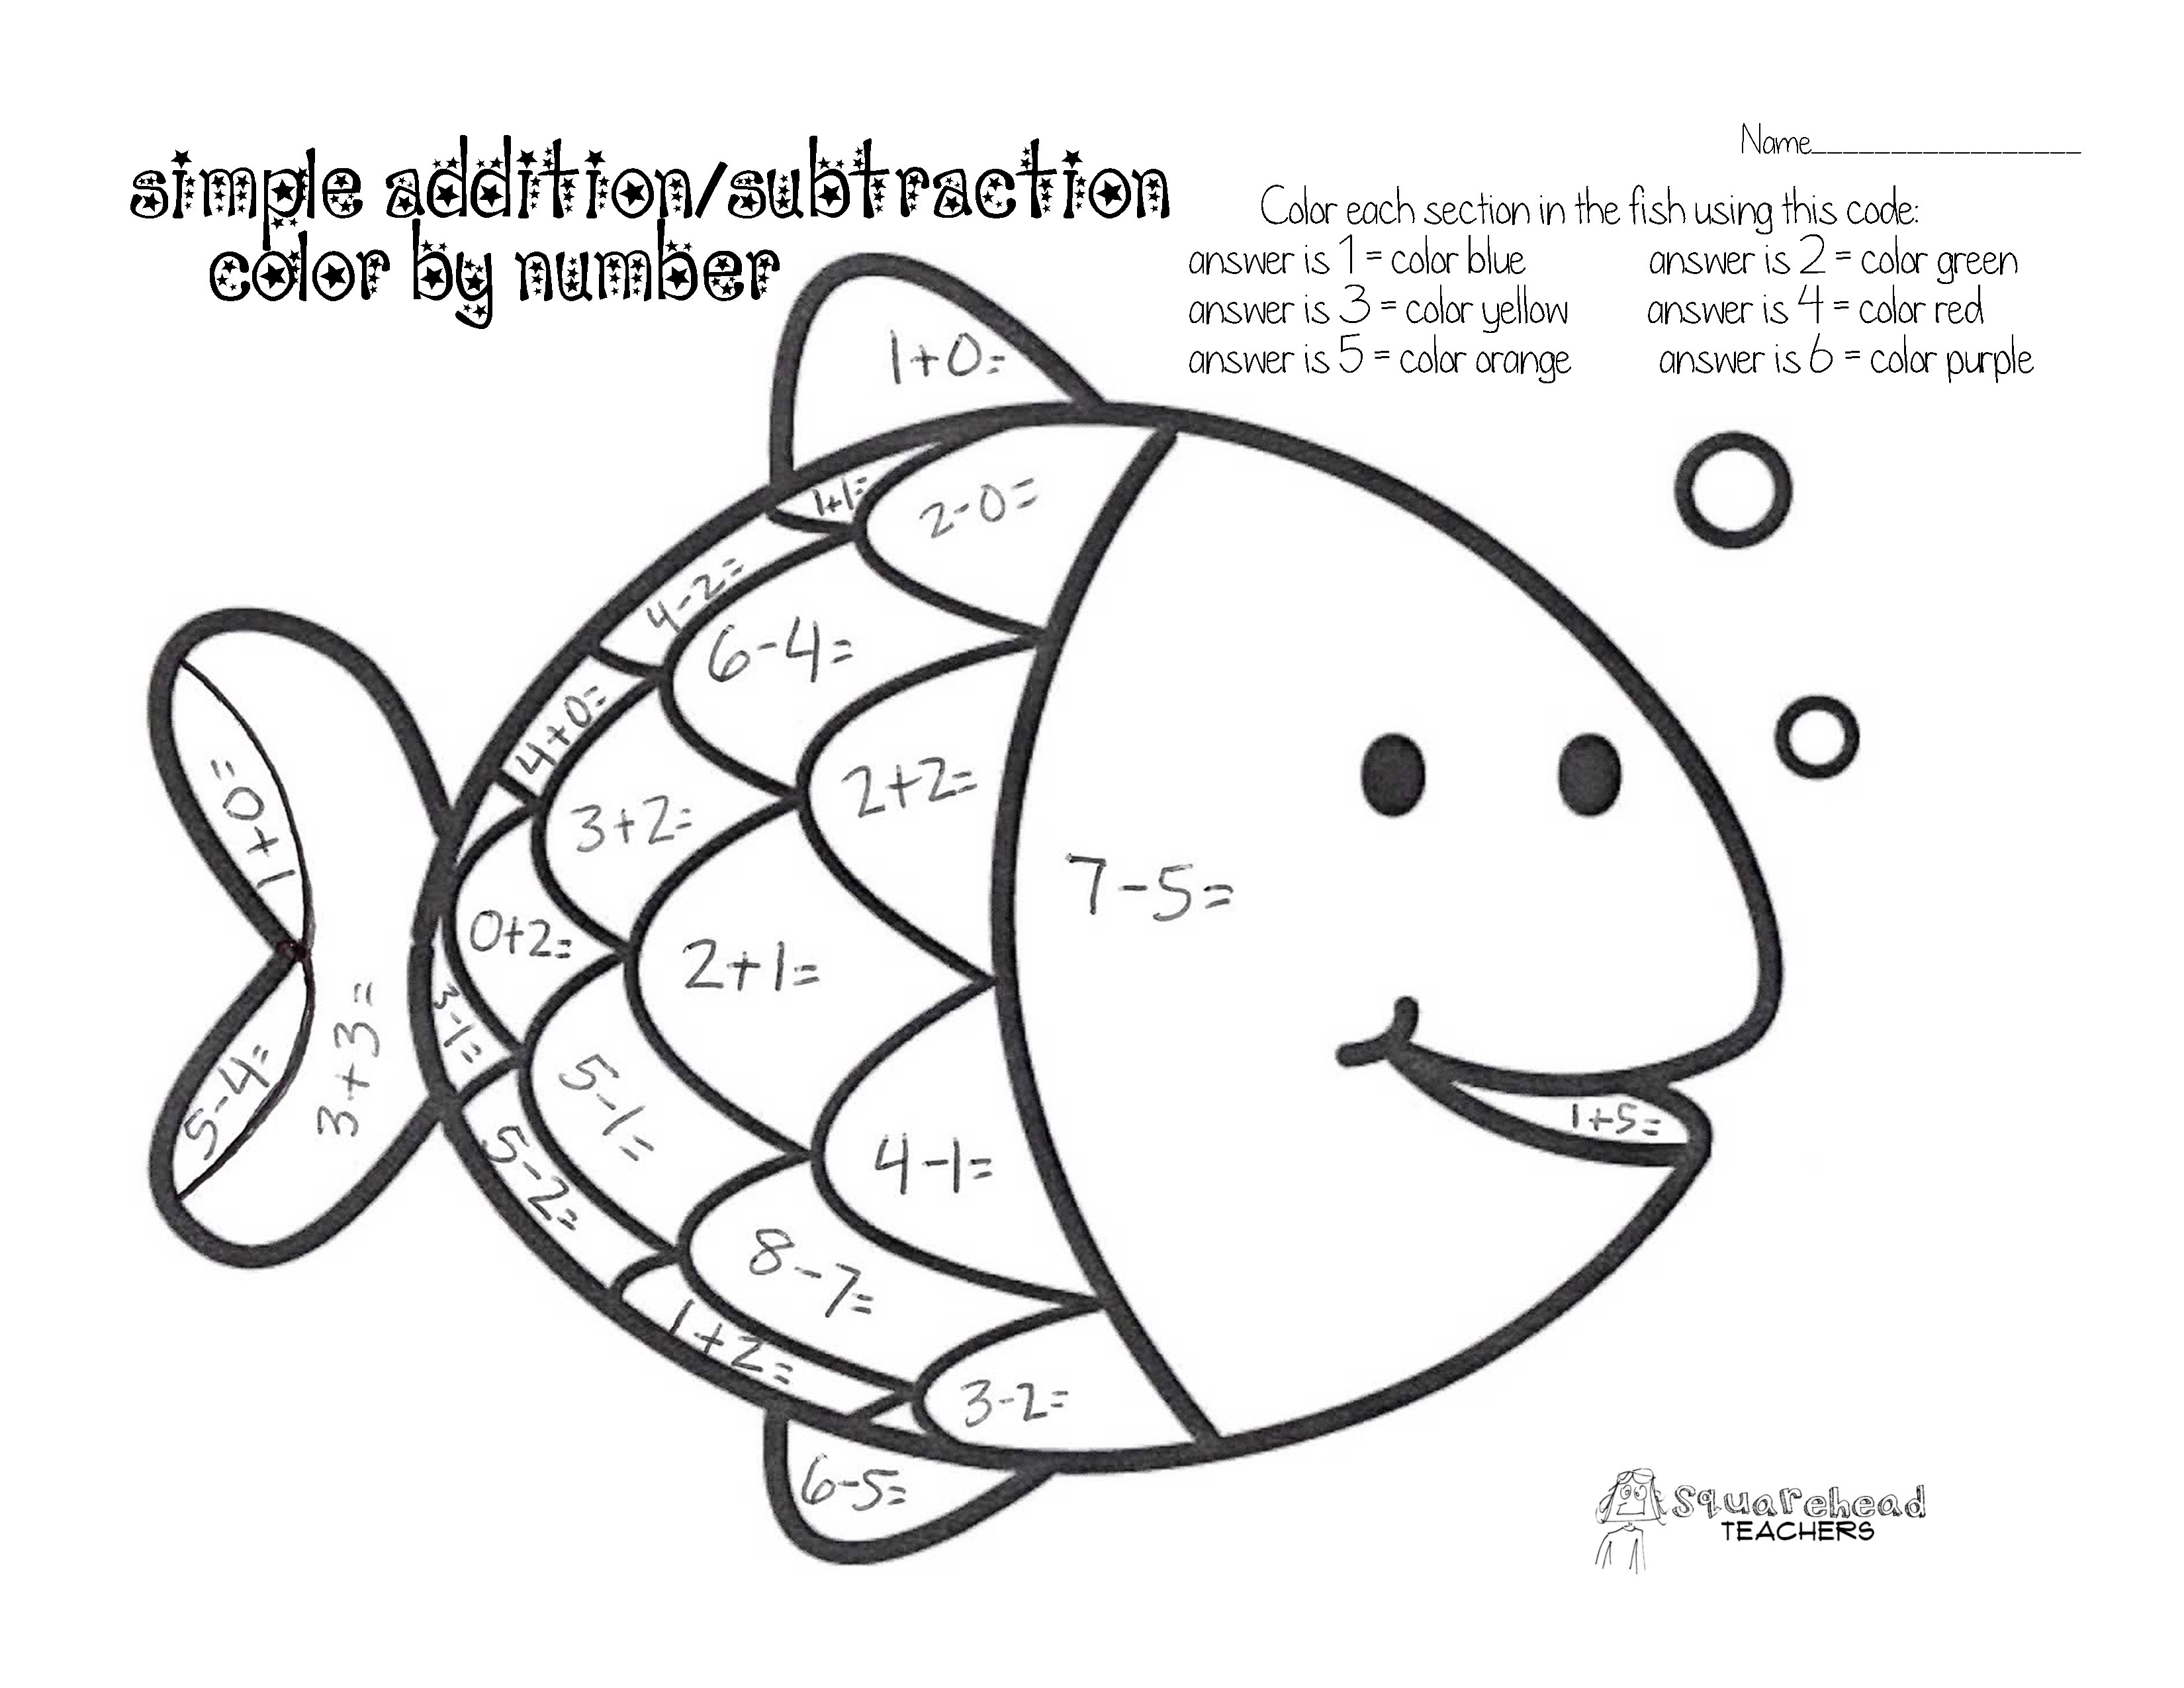 Coloring Pages ~ Free Coloring Printables For Kindergarten Christmas - Free Printable Math Coloring Worksheets For 2Nd Grade